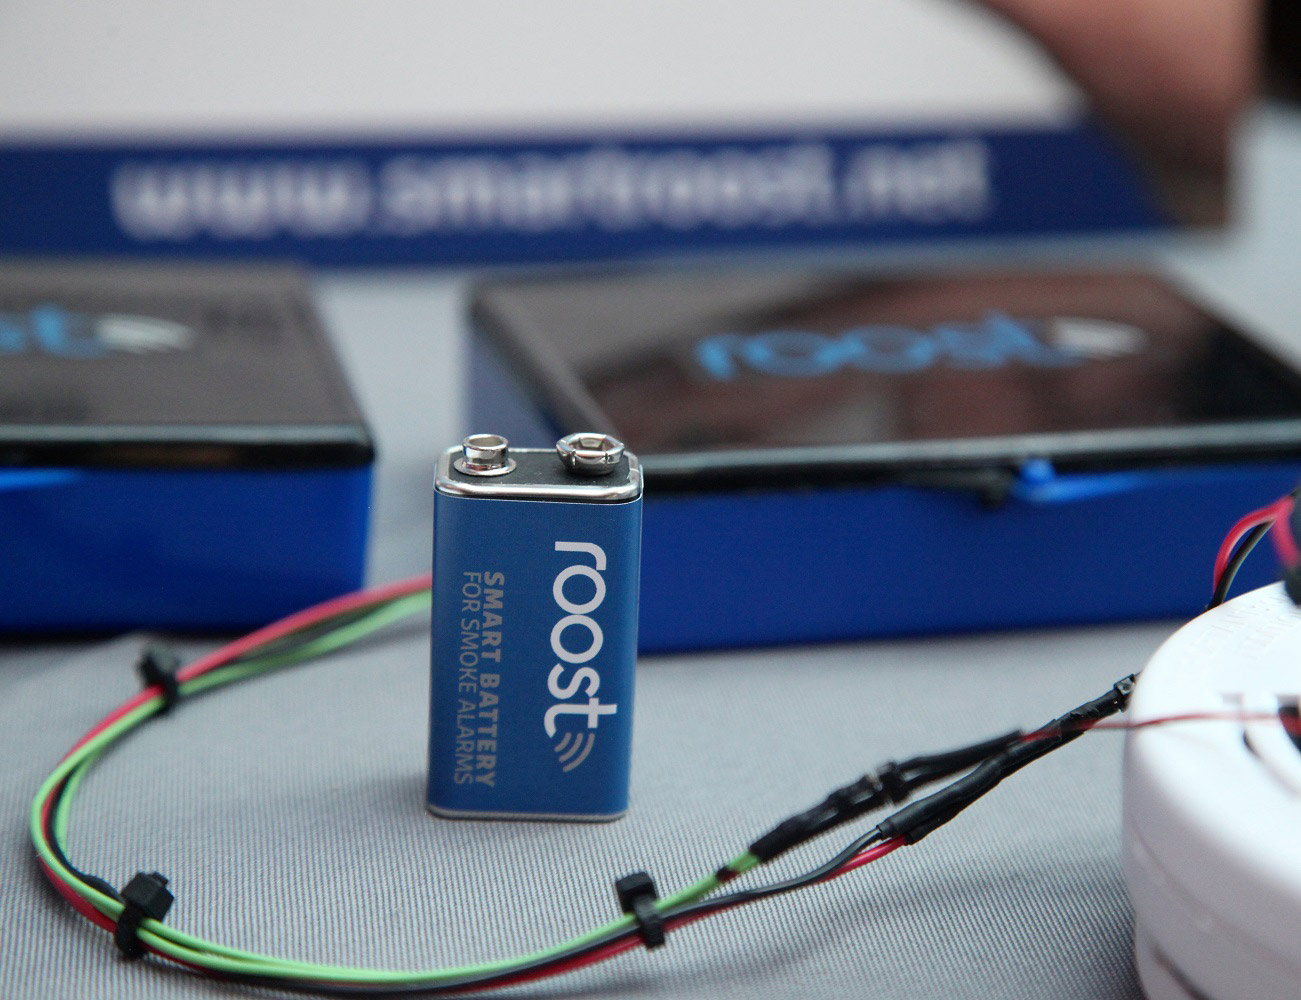 The Roost Smart Battery